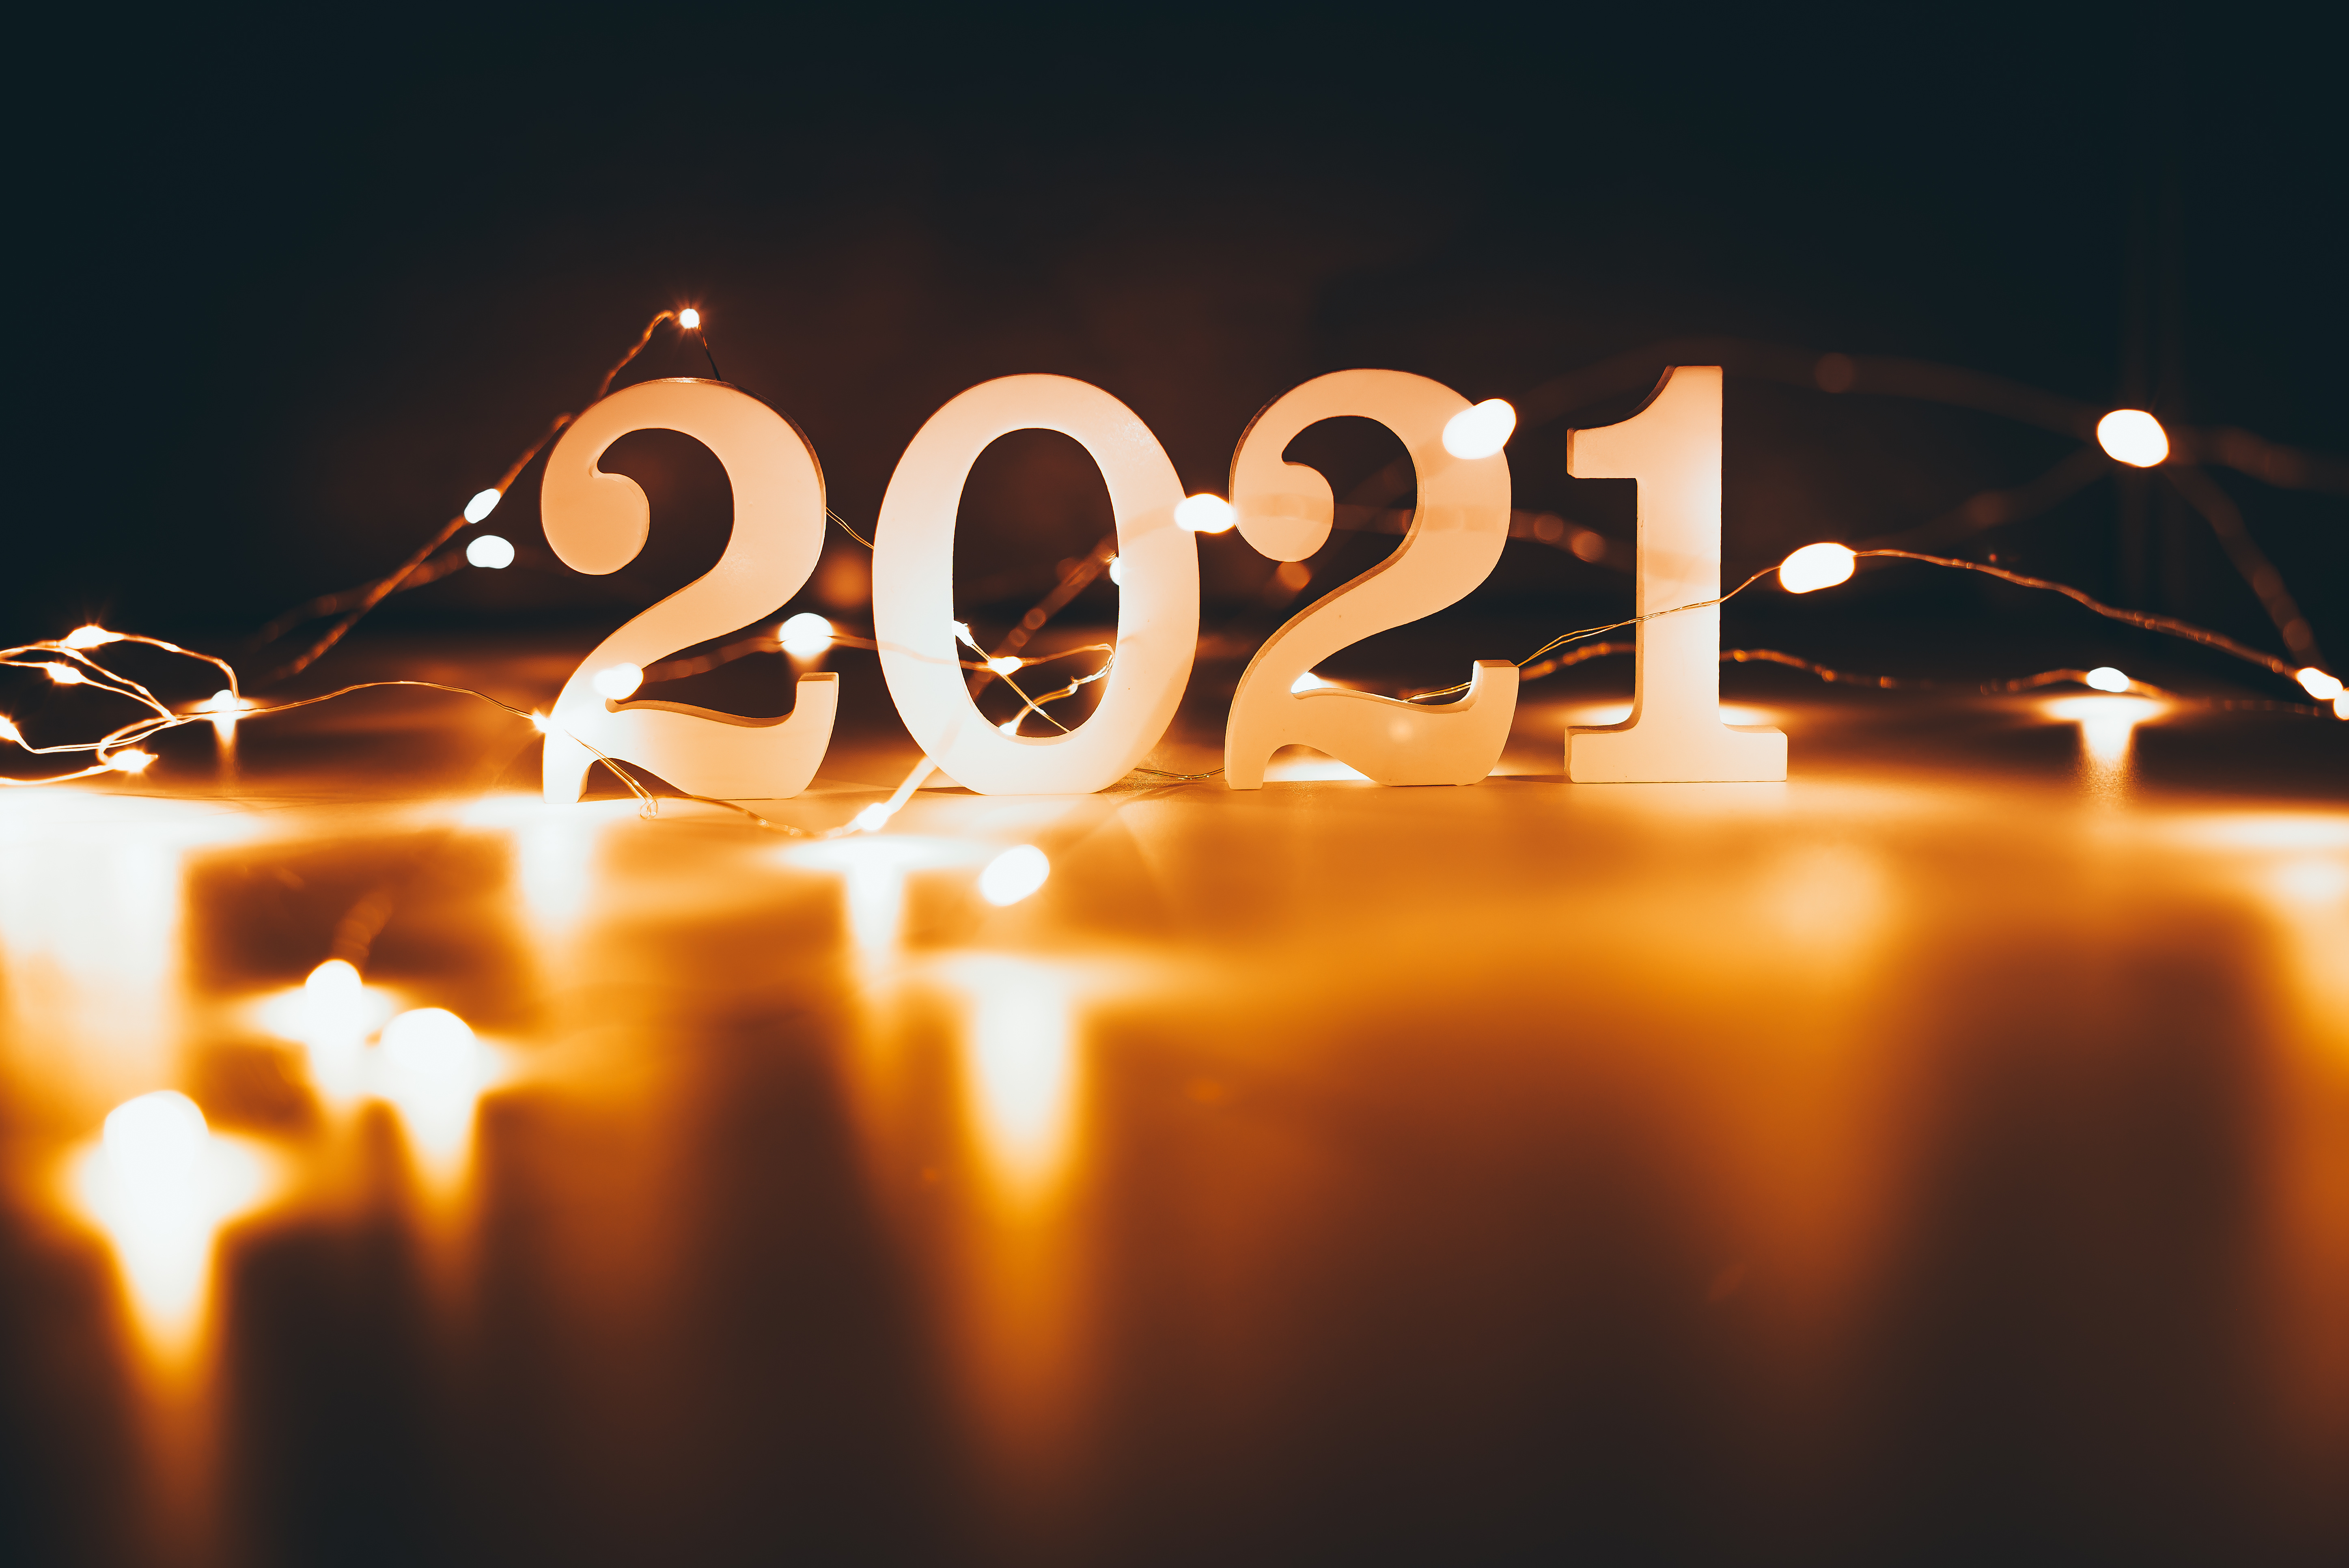 Celebrate New Year's Eve Safely With These Party Ideas for 2021